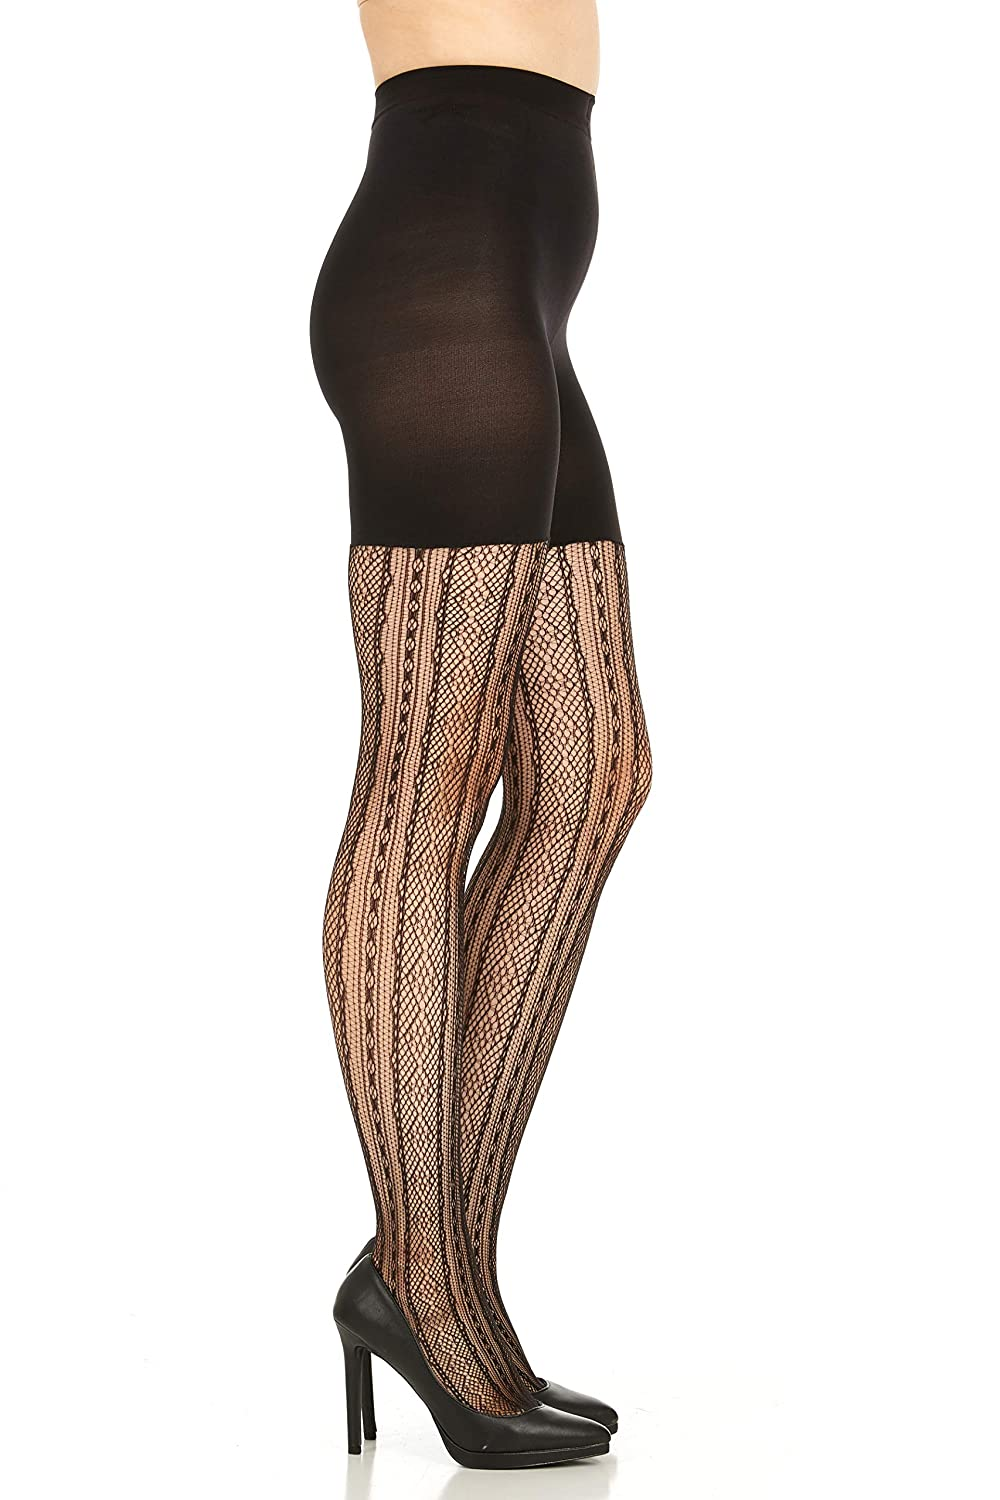 776c73aa33219 SPANX Control Top Shaping Tights Patterned Diamond Stripe - 2062 at Amazon  Women's Clothing store: